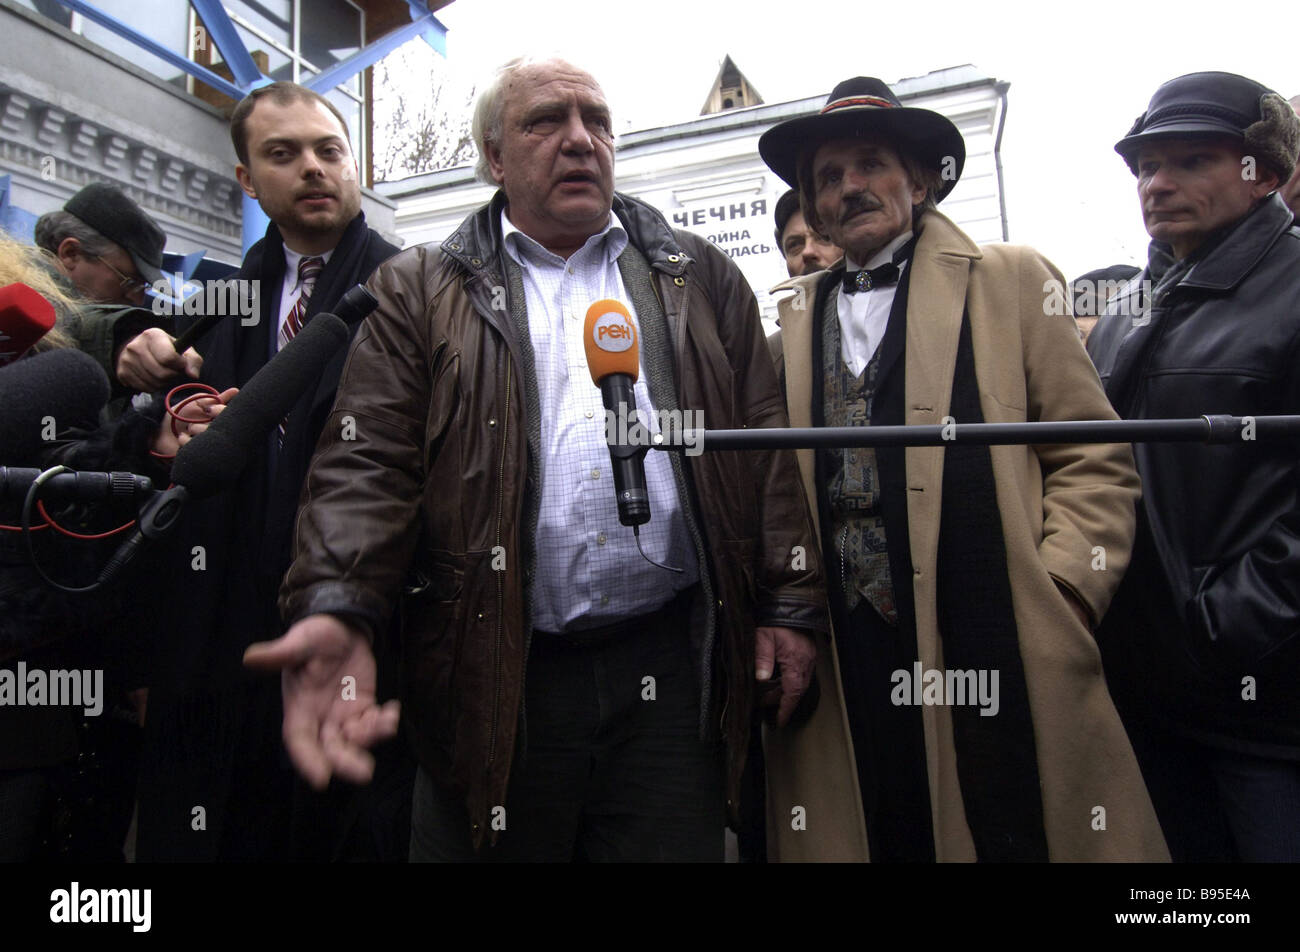 An initiative group for nominating Vladimir Bukovsky center a human rights activist and a former Soviet dissident - Stock Image